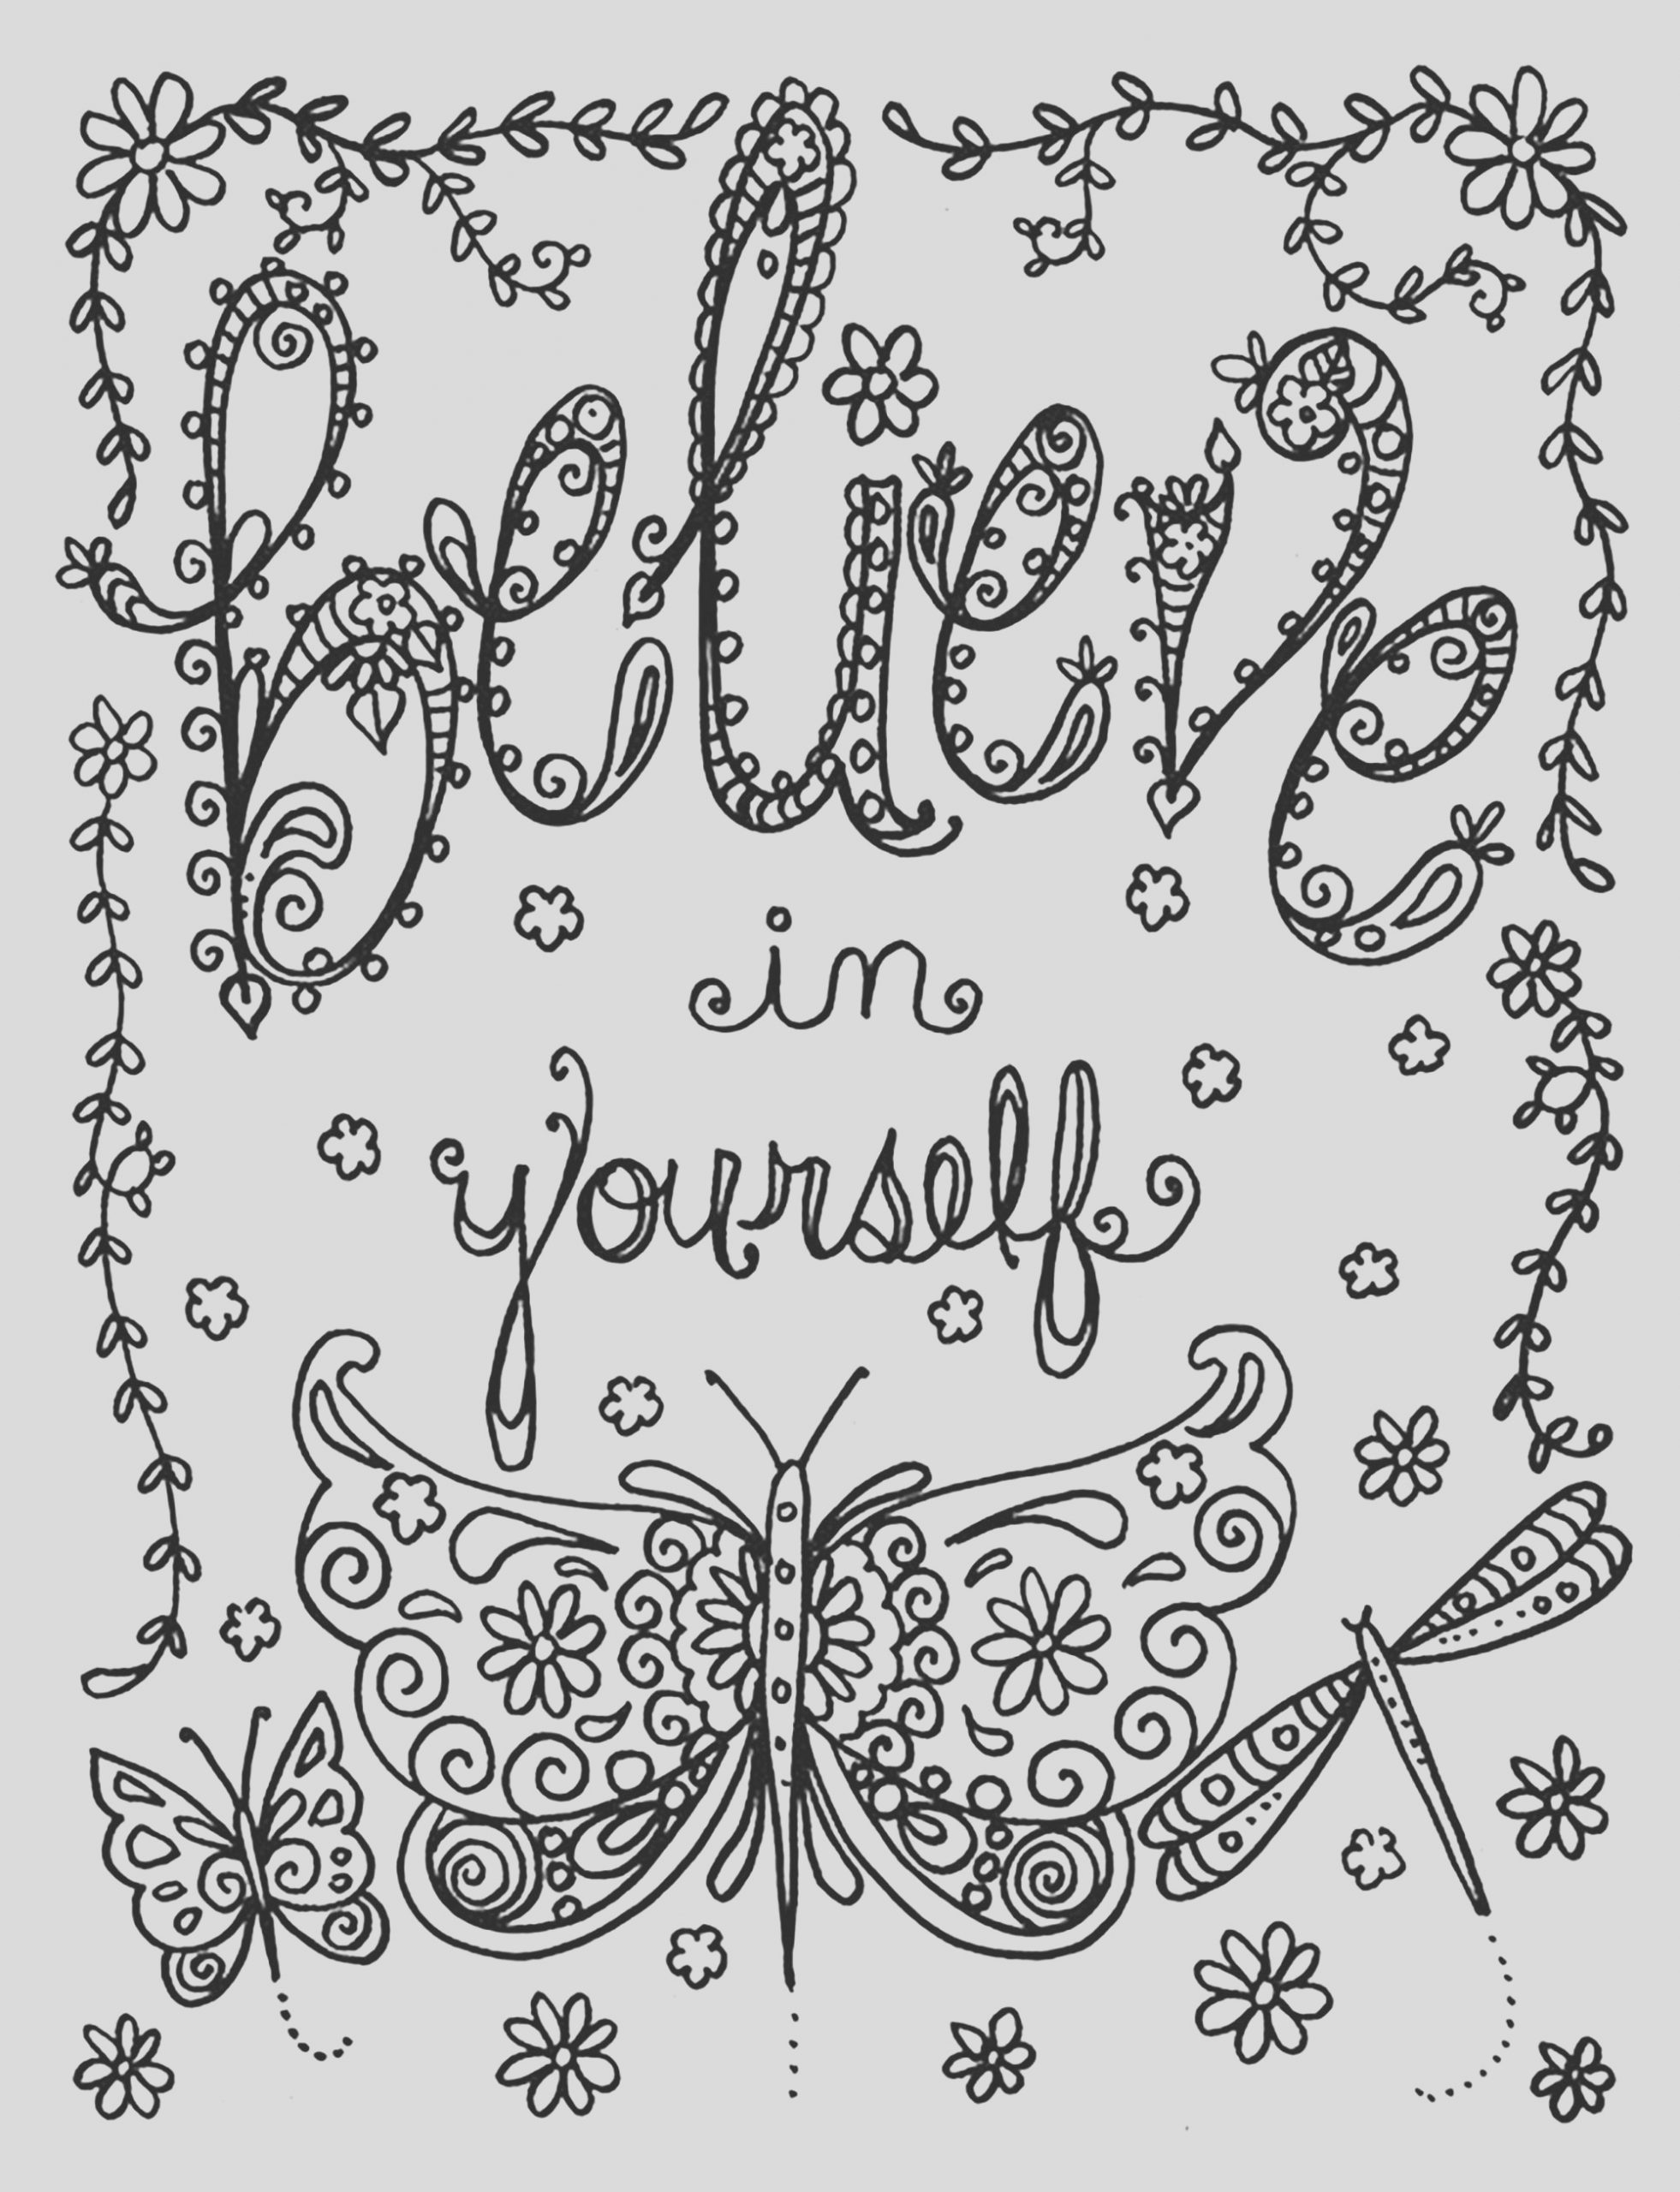 image=anti stress coloring page believe in yourself by deborah muller 1